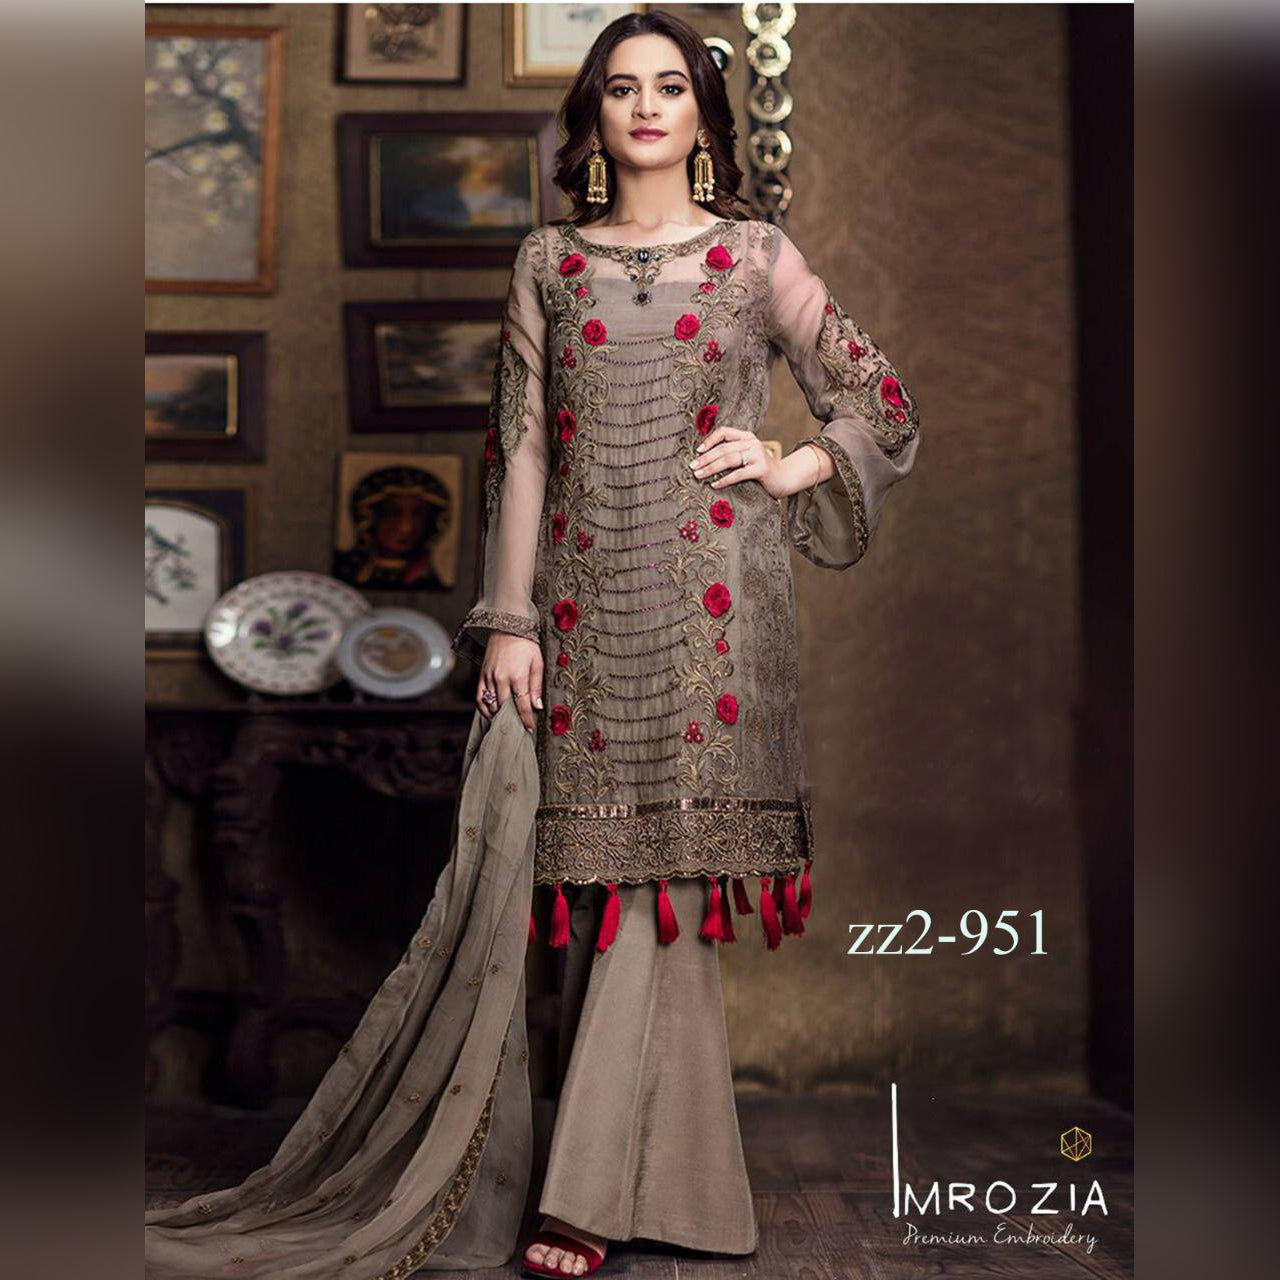 Mrozia Lawn 3 Piece Un-stitch Suit For Ladies-NA8773